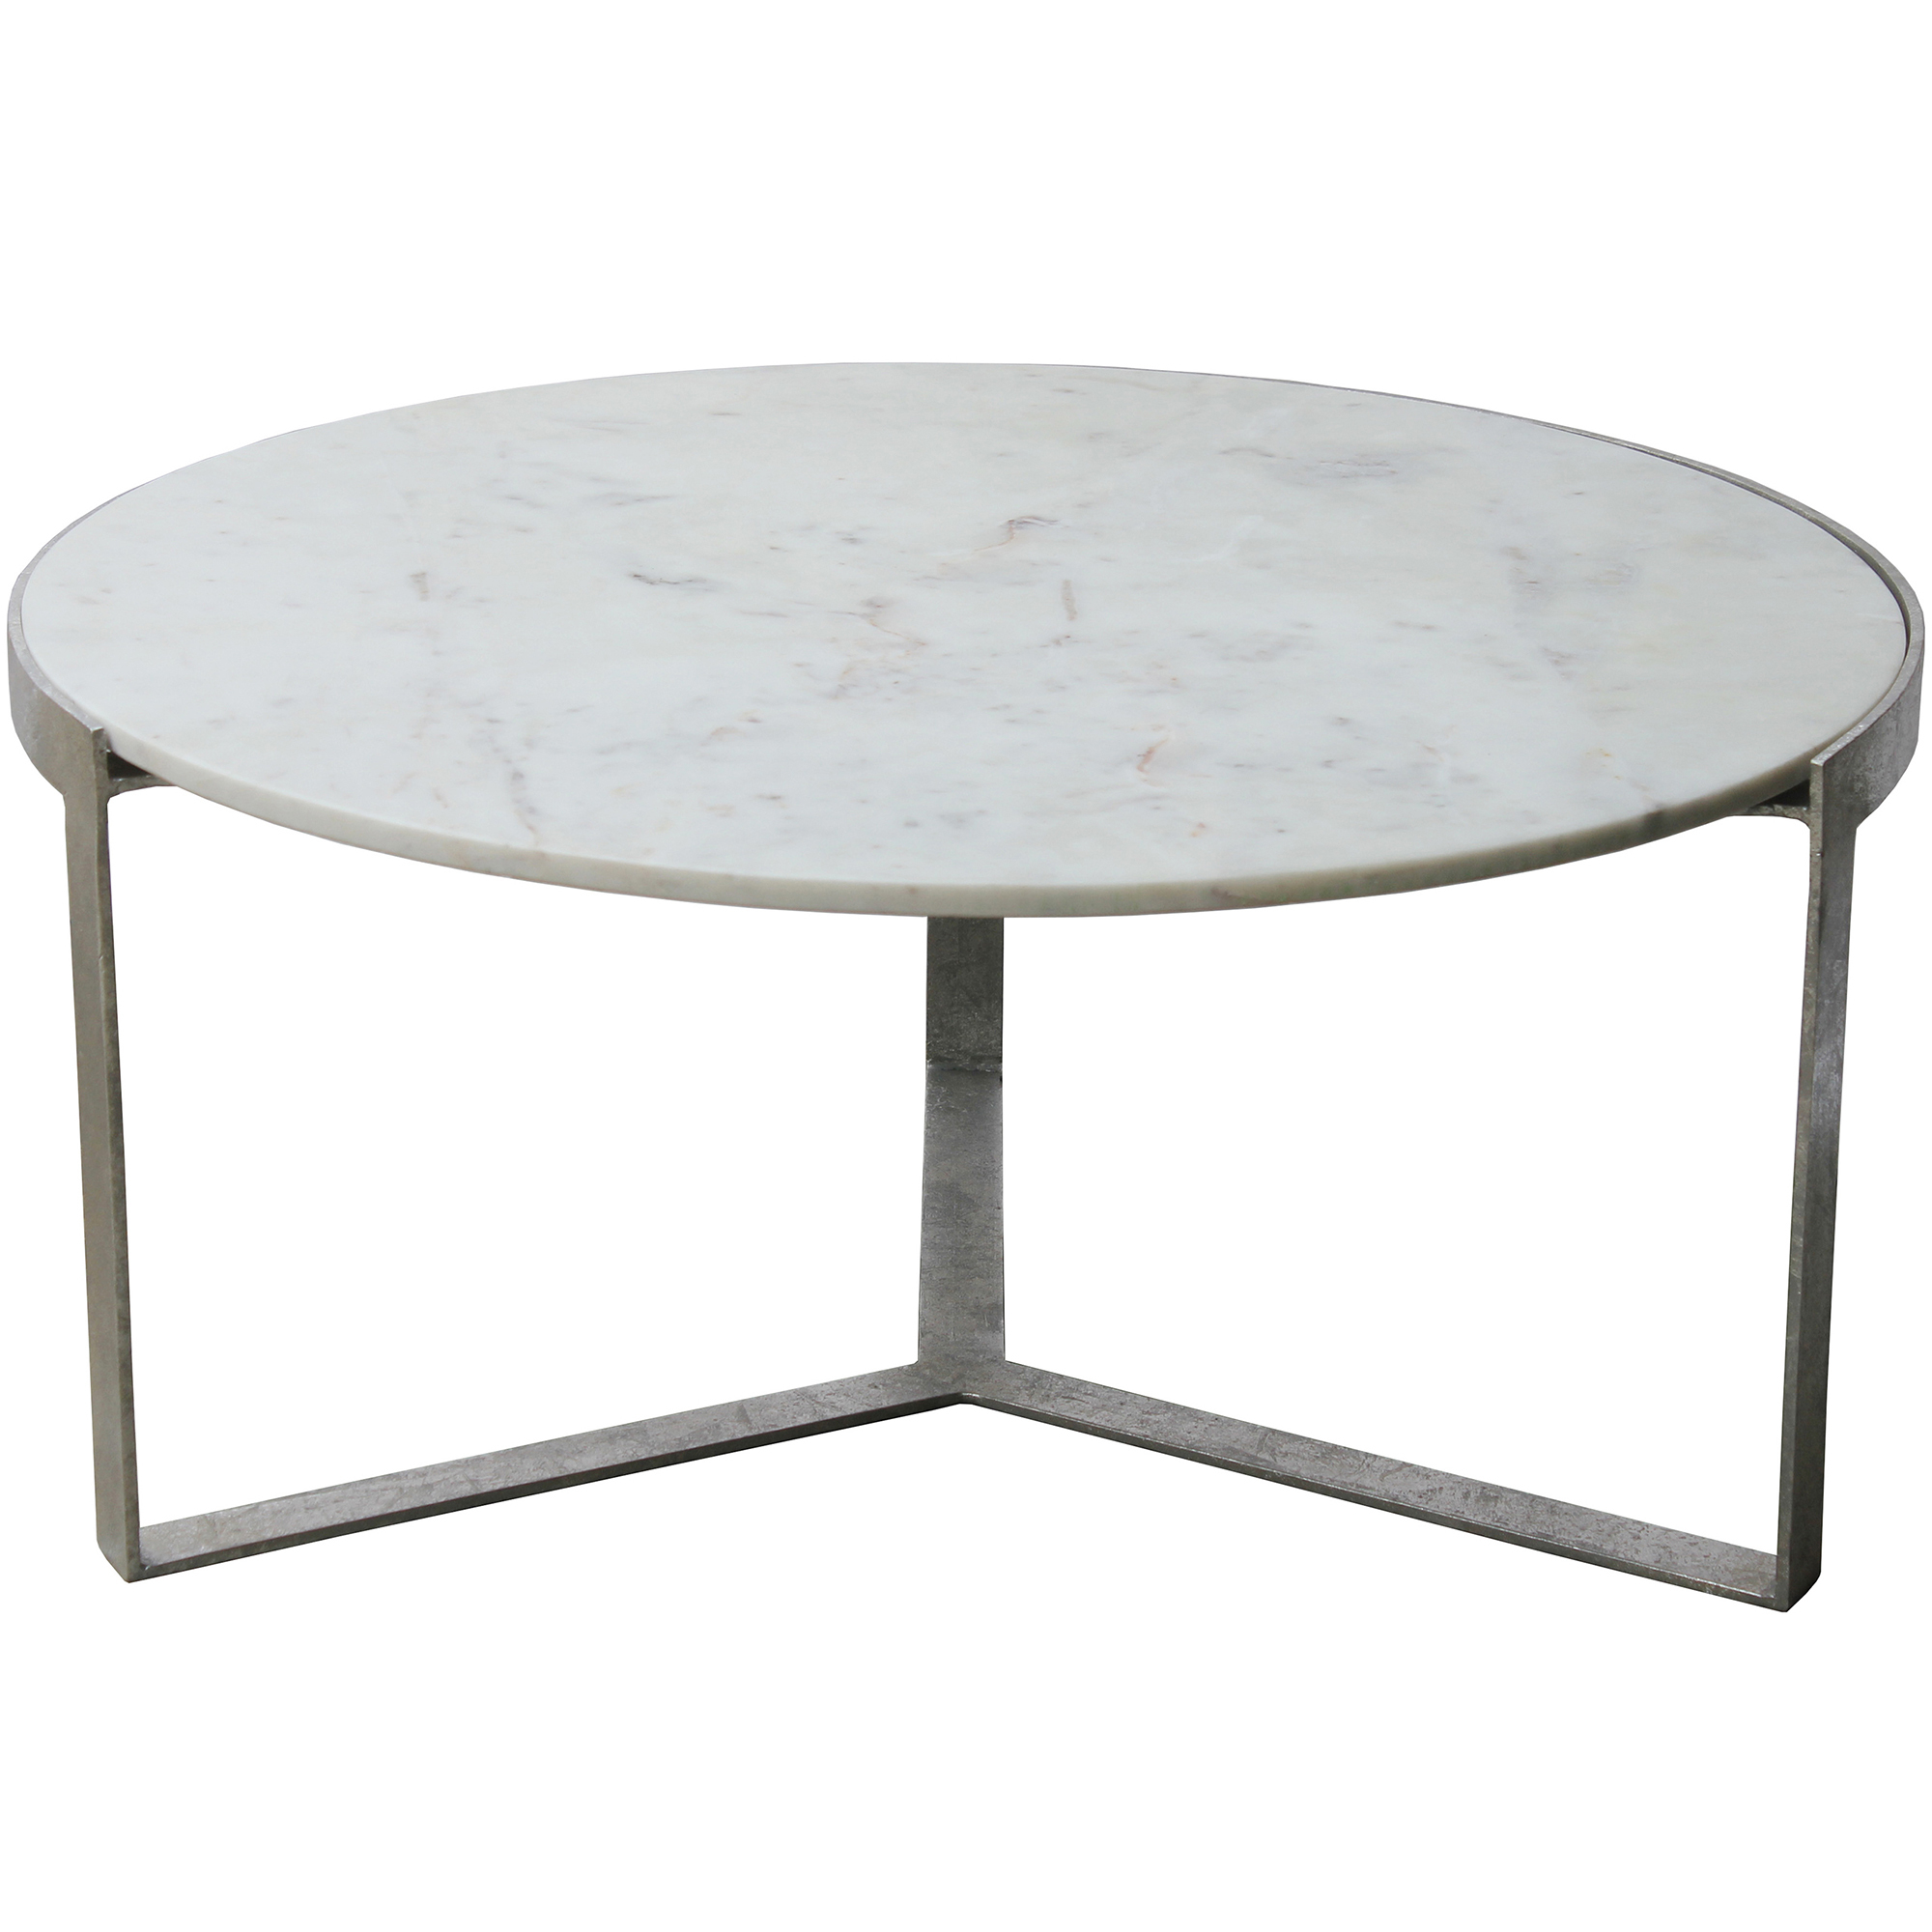 Sku #Pura1014 Oro Contemporary Coffee Table Is Also Sometimes Listed